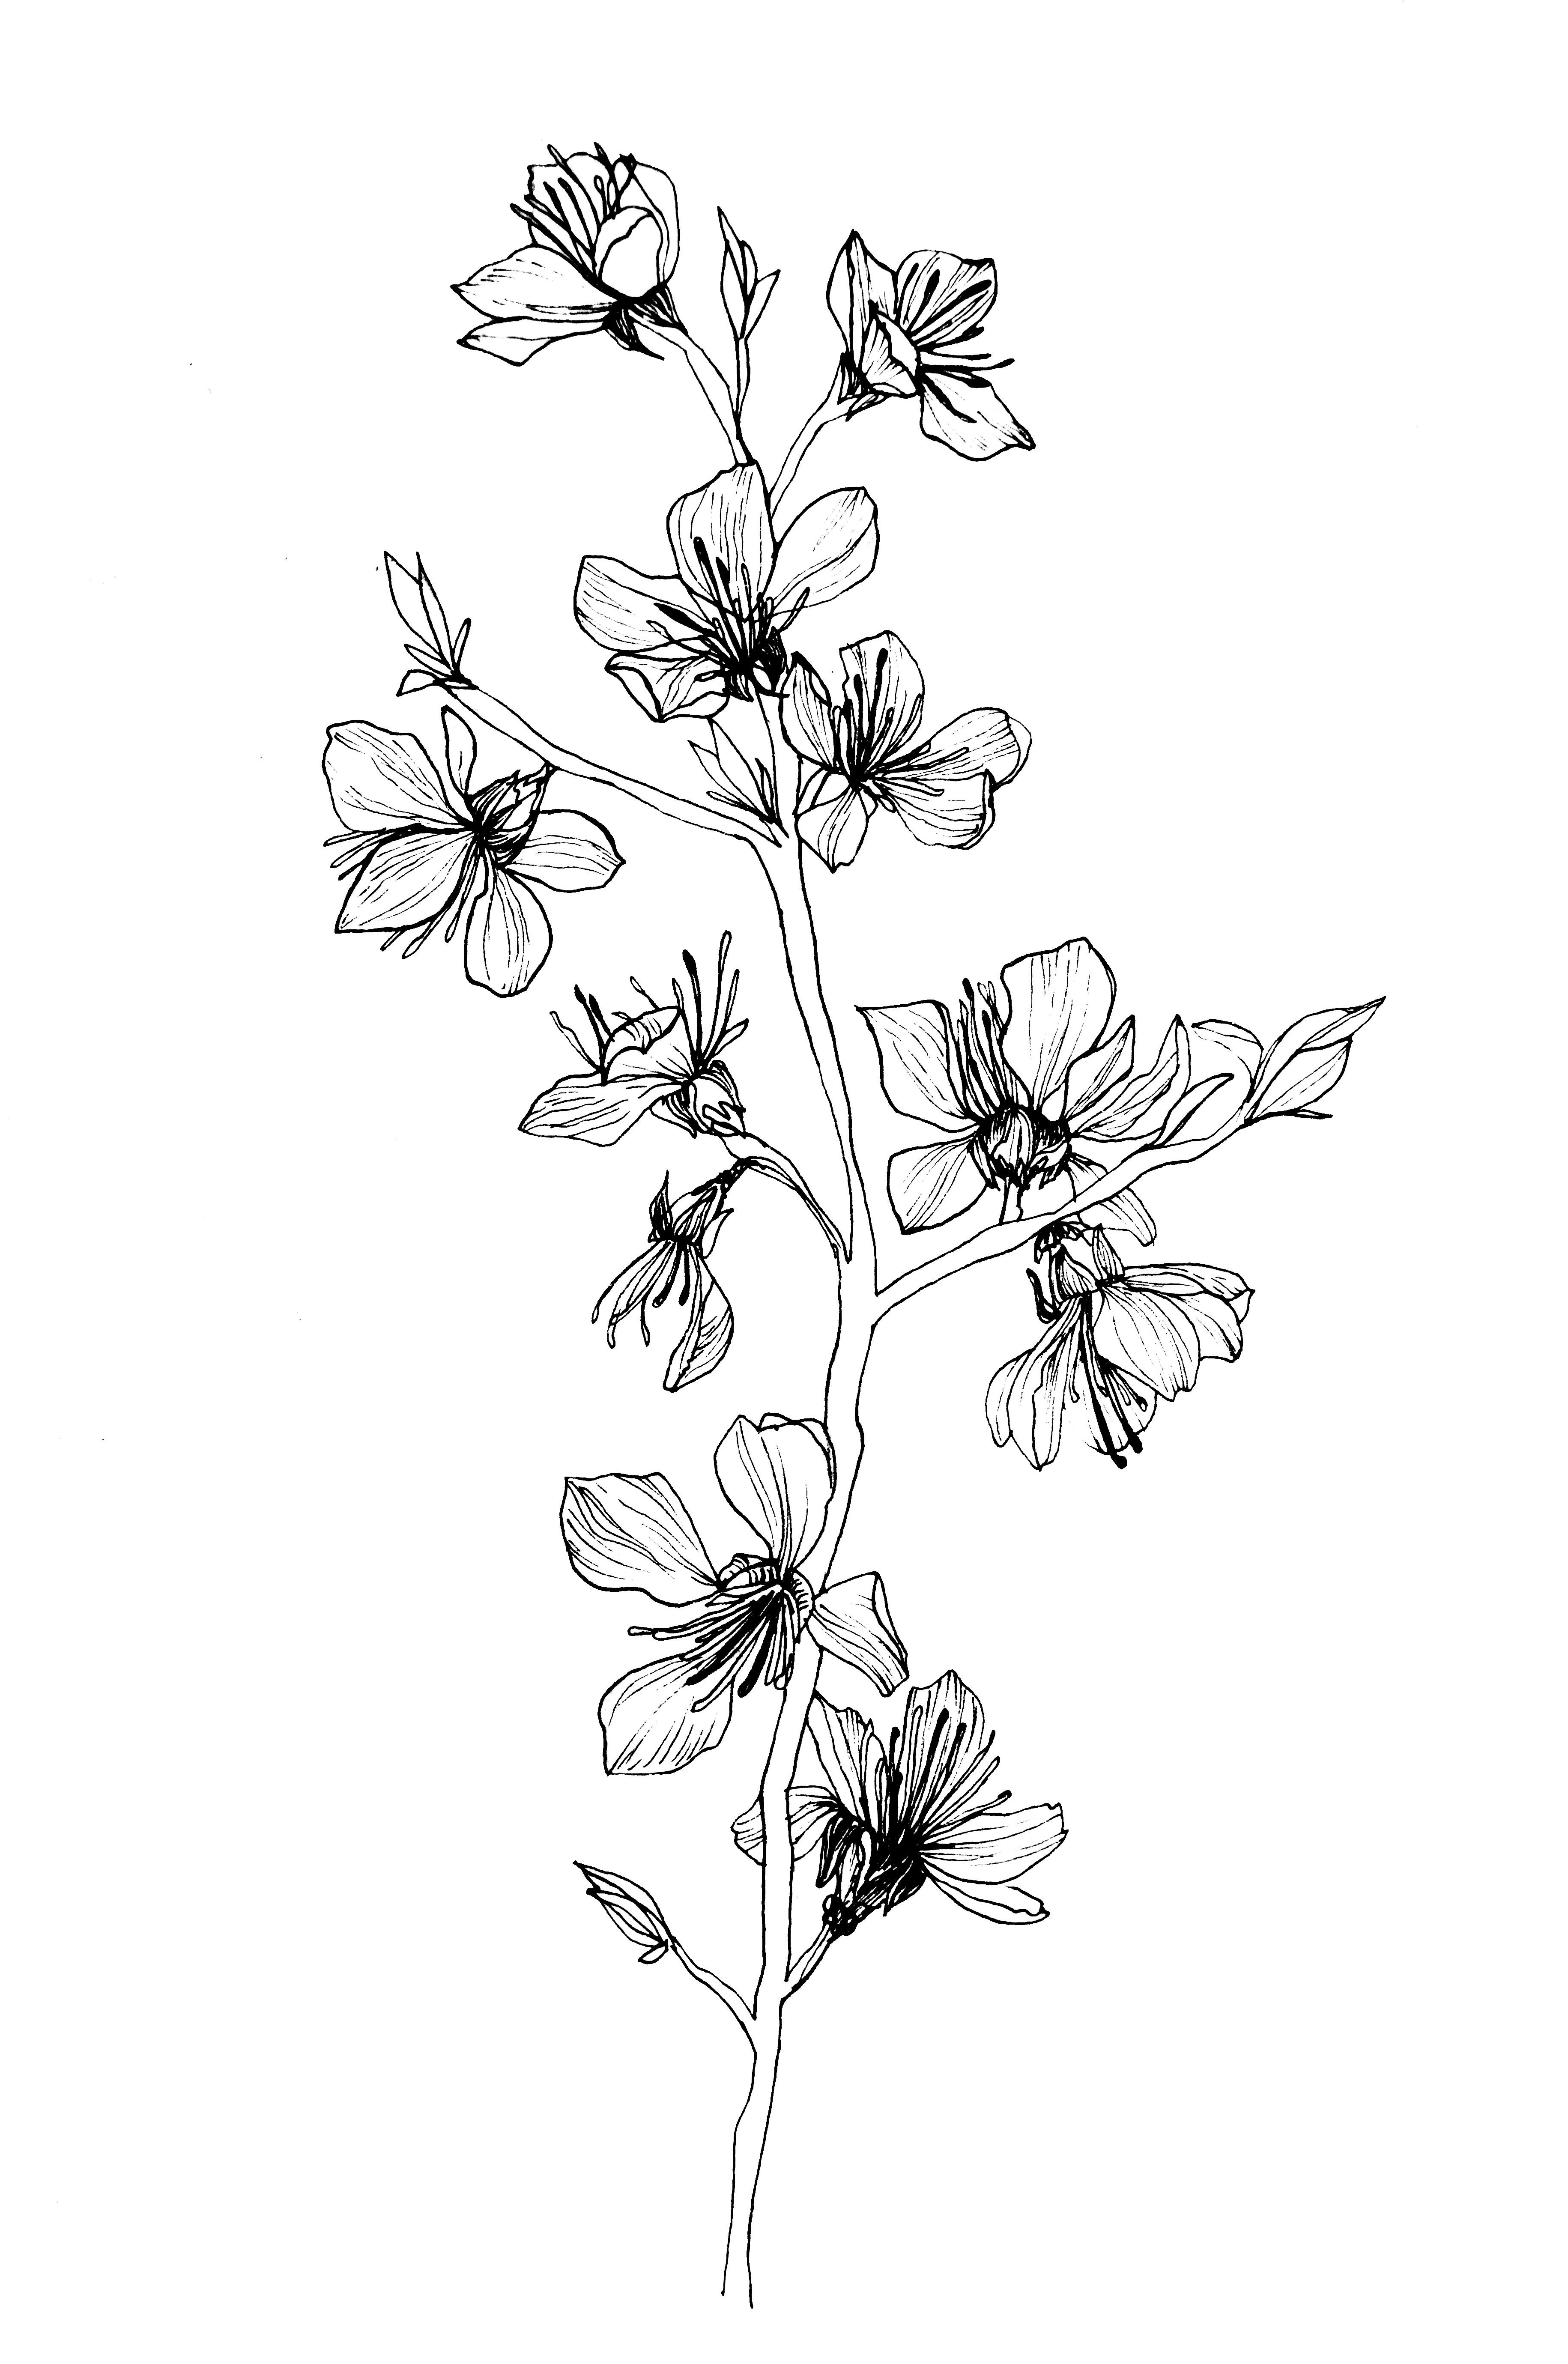 Pin By Aimi Mursyidah On Graphic Larkspur Tattoo Flower Sketches Flower Drawing